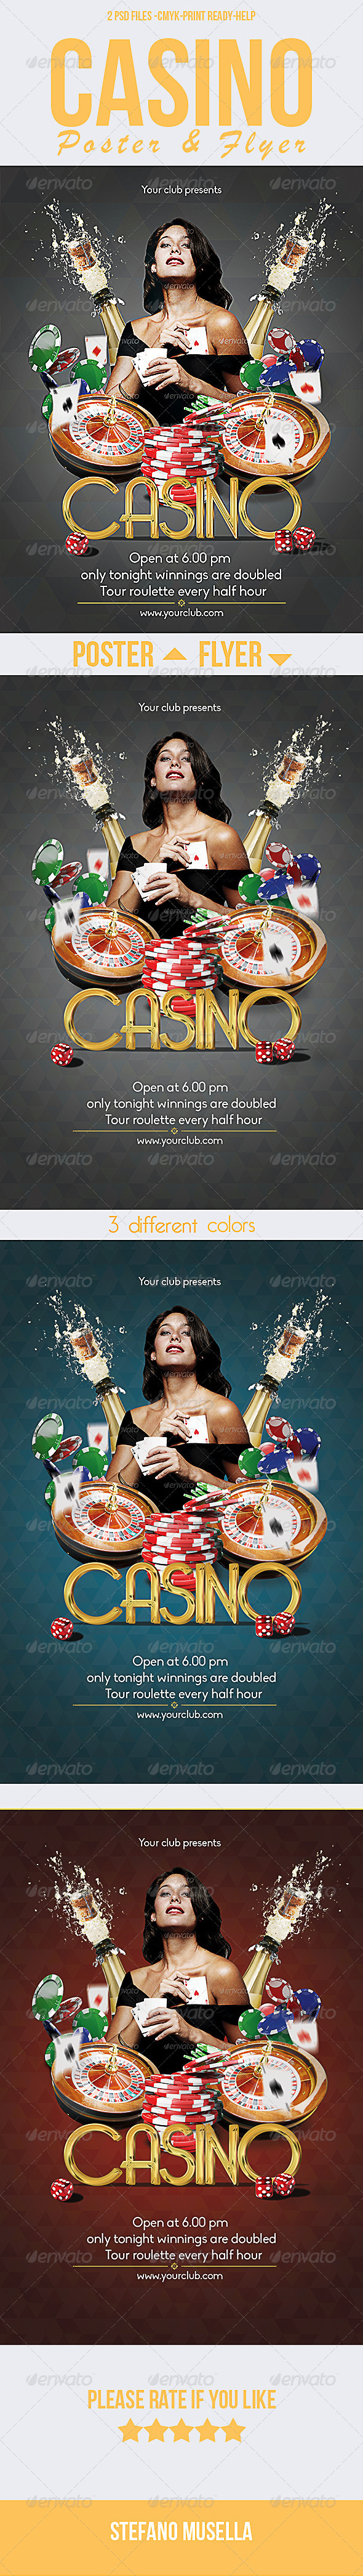 Casino Poster and Flyer - Clubs & Parties Events